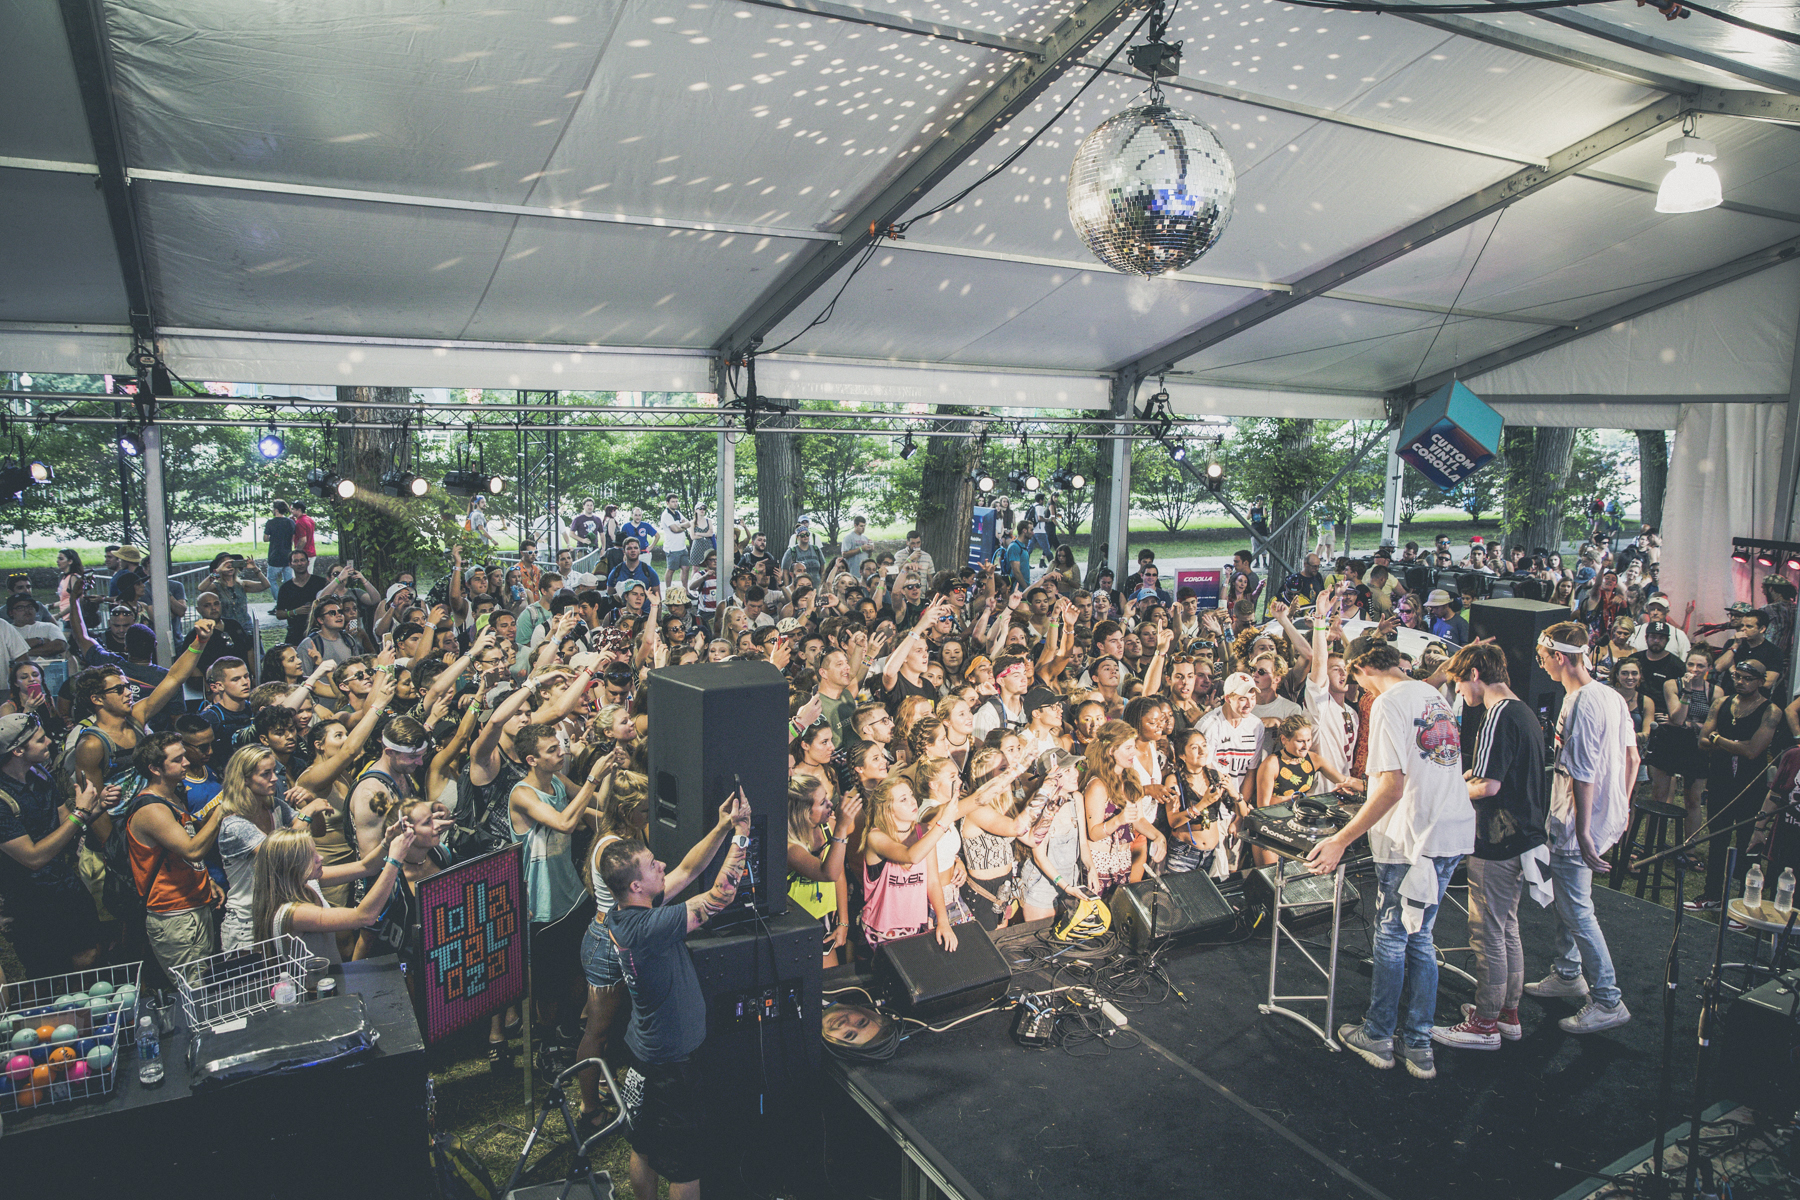 SPIN at Lollapalooza 2016: Day 2 at Toyota Music Den with Frank Turner, Louis the Child, and More